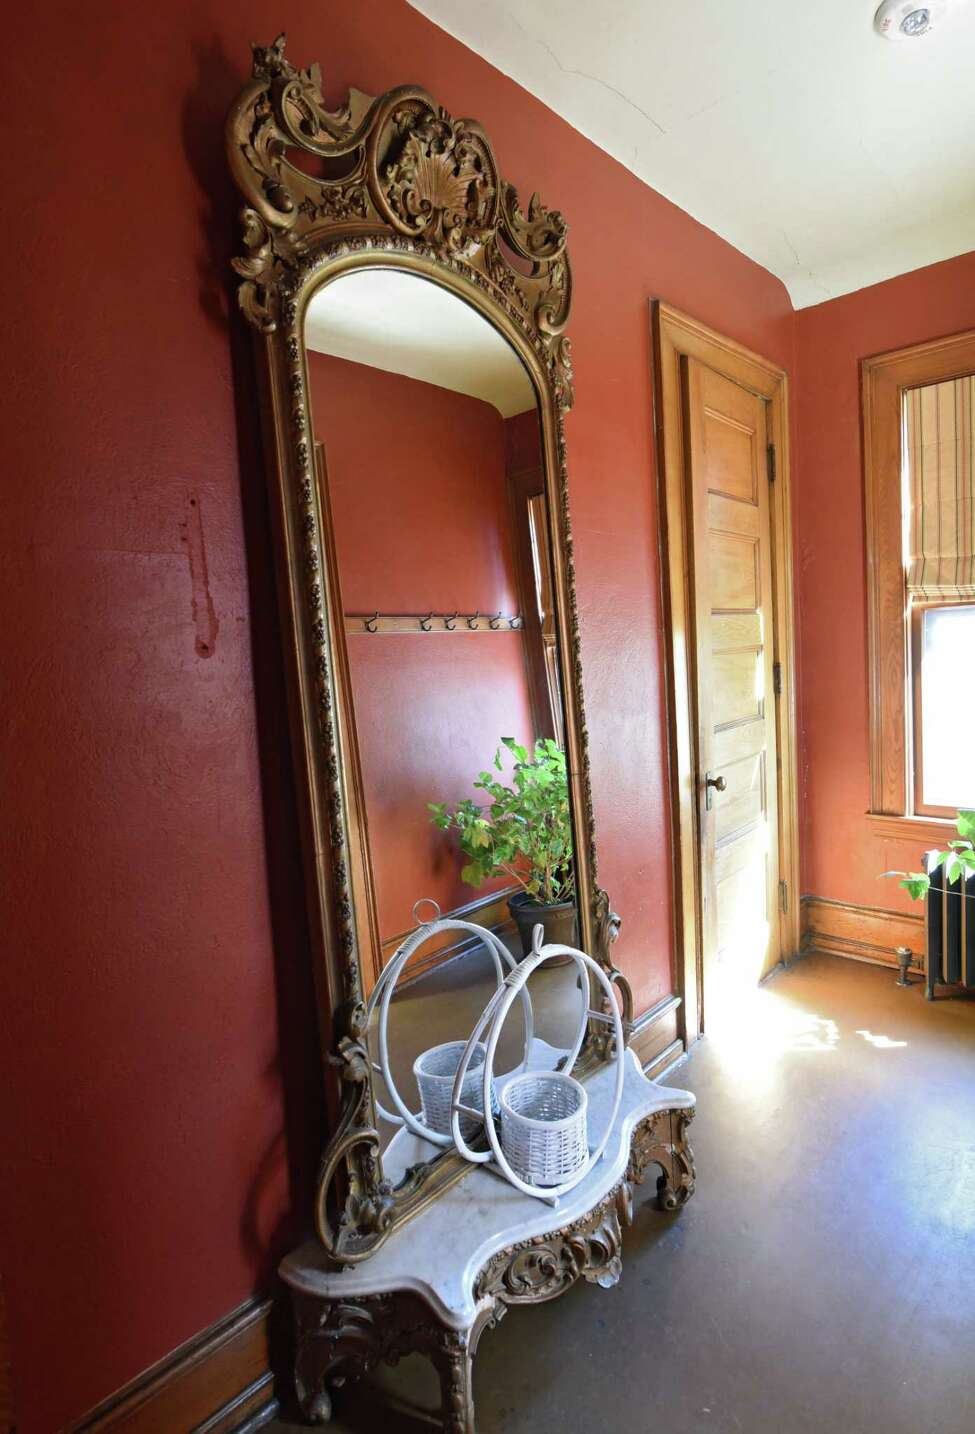 Antique mirror in The Woman's Club of Albany on Monday, July 1, 2019 in Albany, N.Y. The members are celebrating 100 years of home ownership. (Lori Van Buren/Times Union)